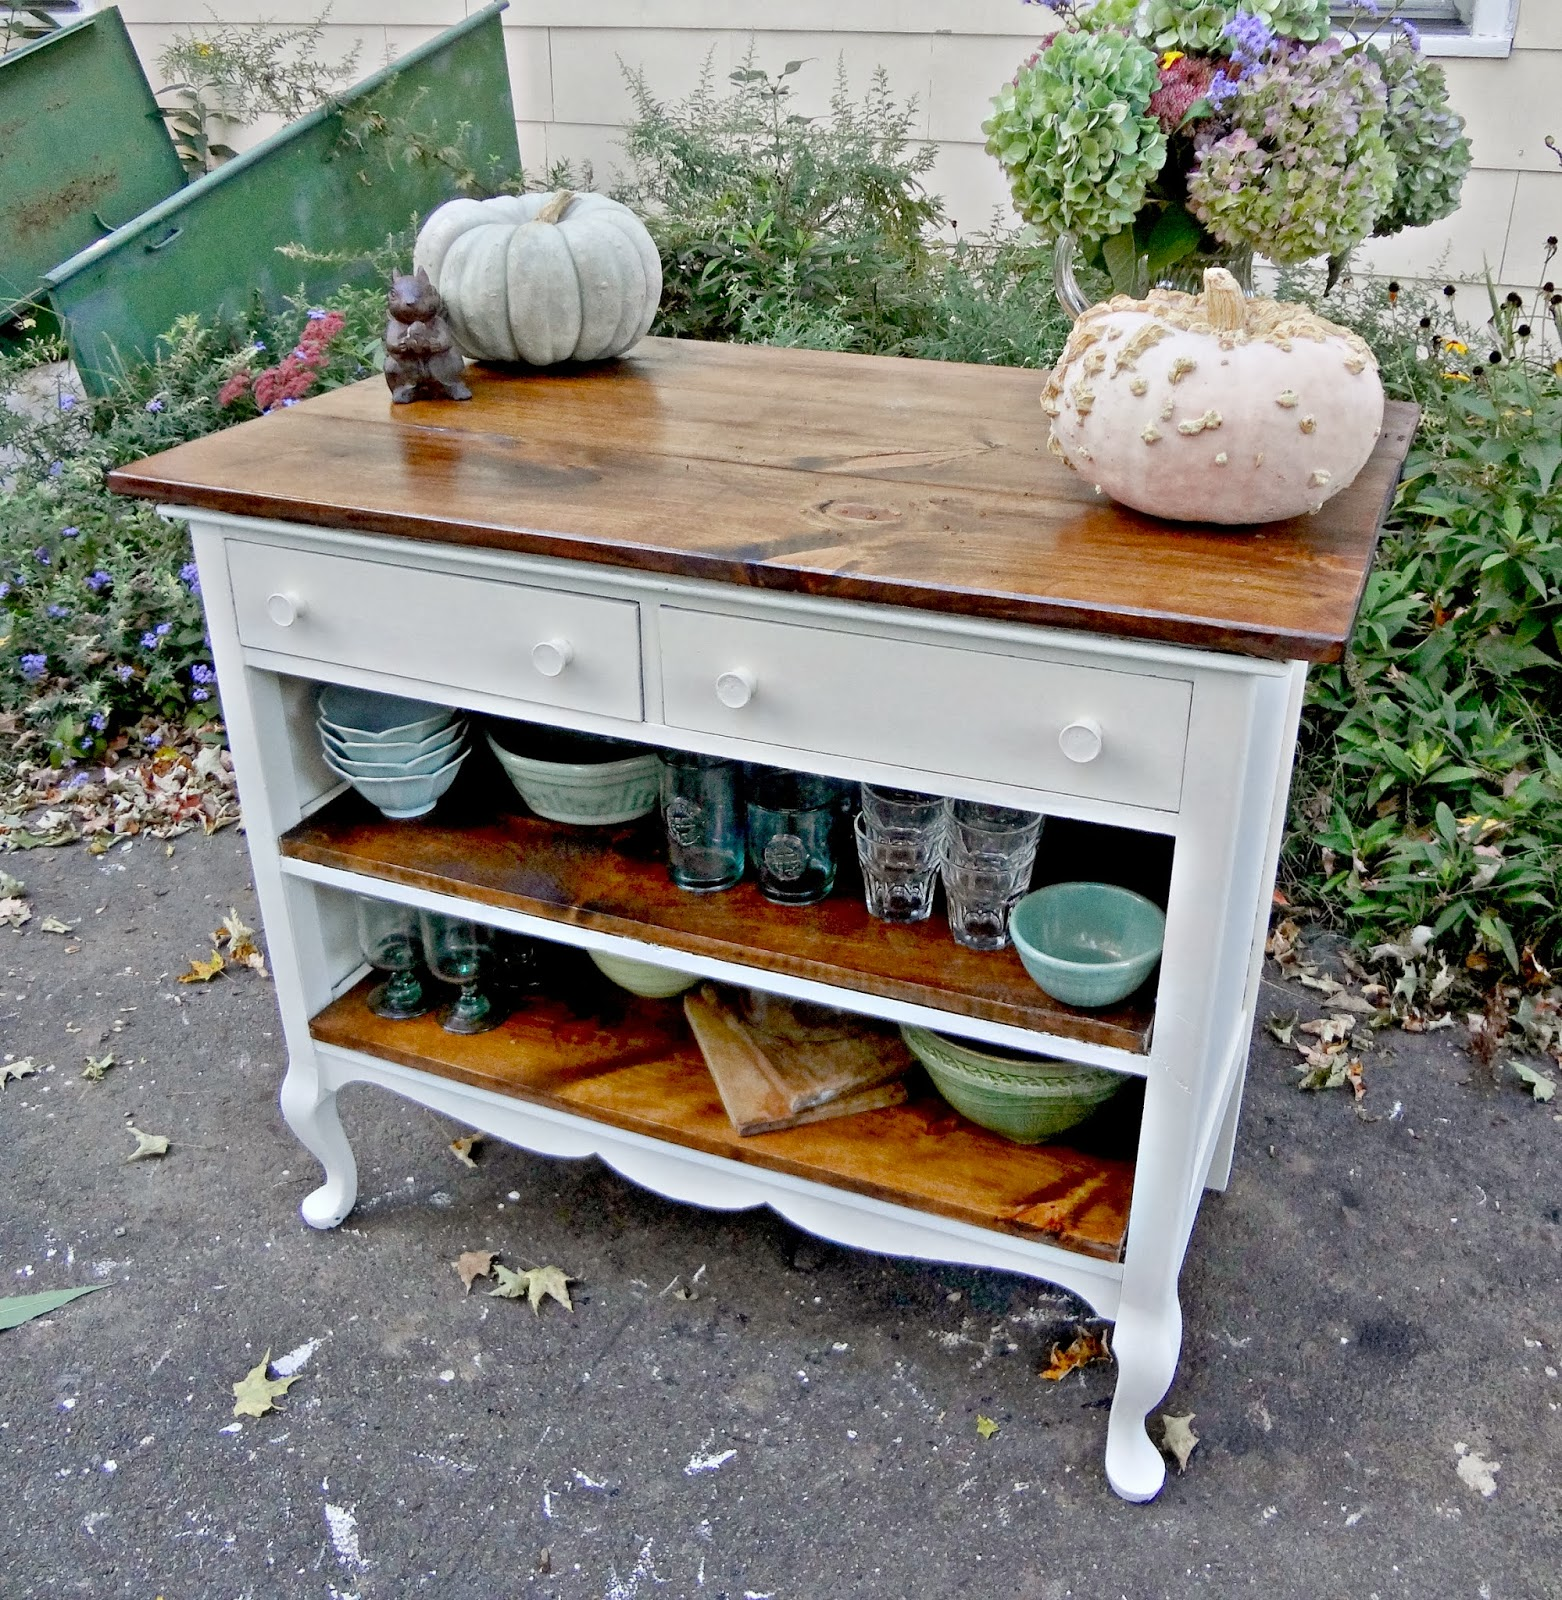 Heir and space antique dresser turned kitchen island for Repurposed antiques ideas